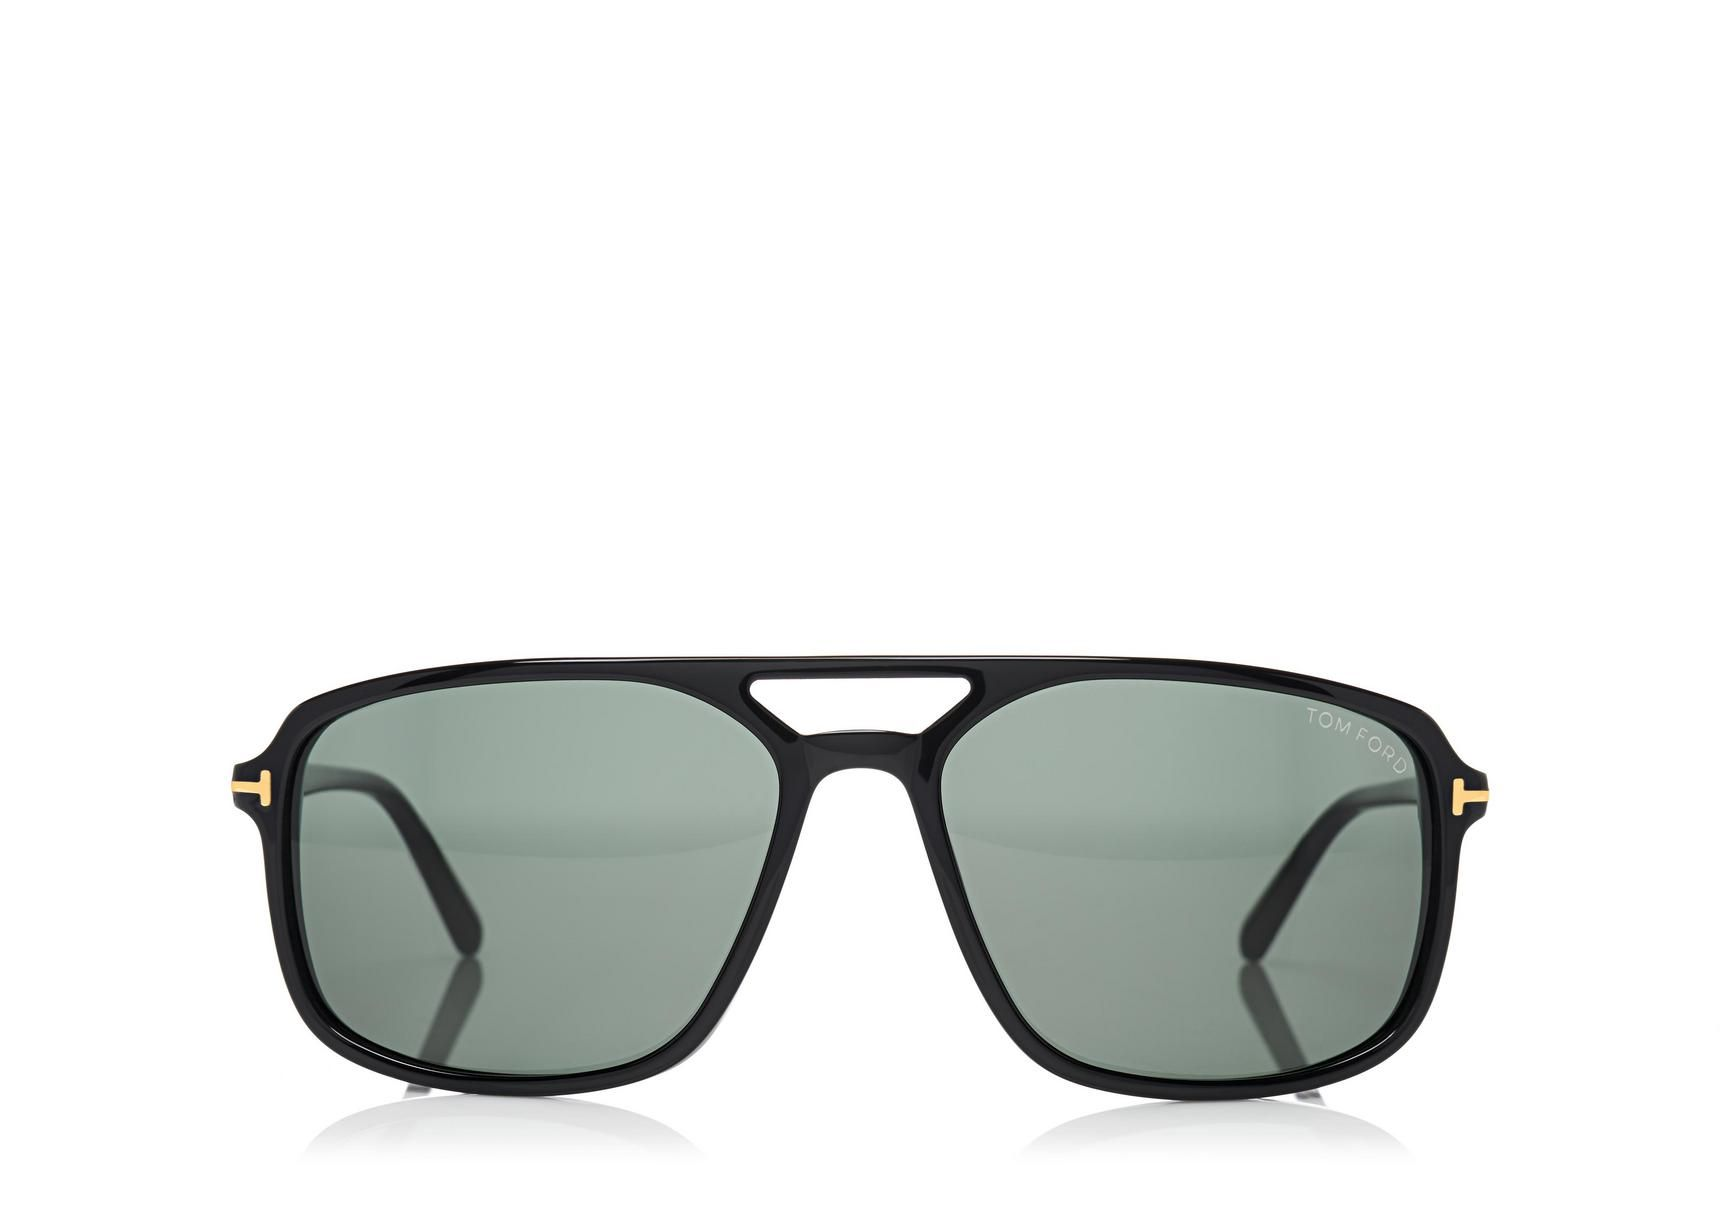 62654747a55 Tom Ford Terry Square Sunglasses